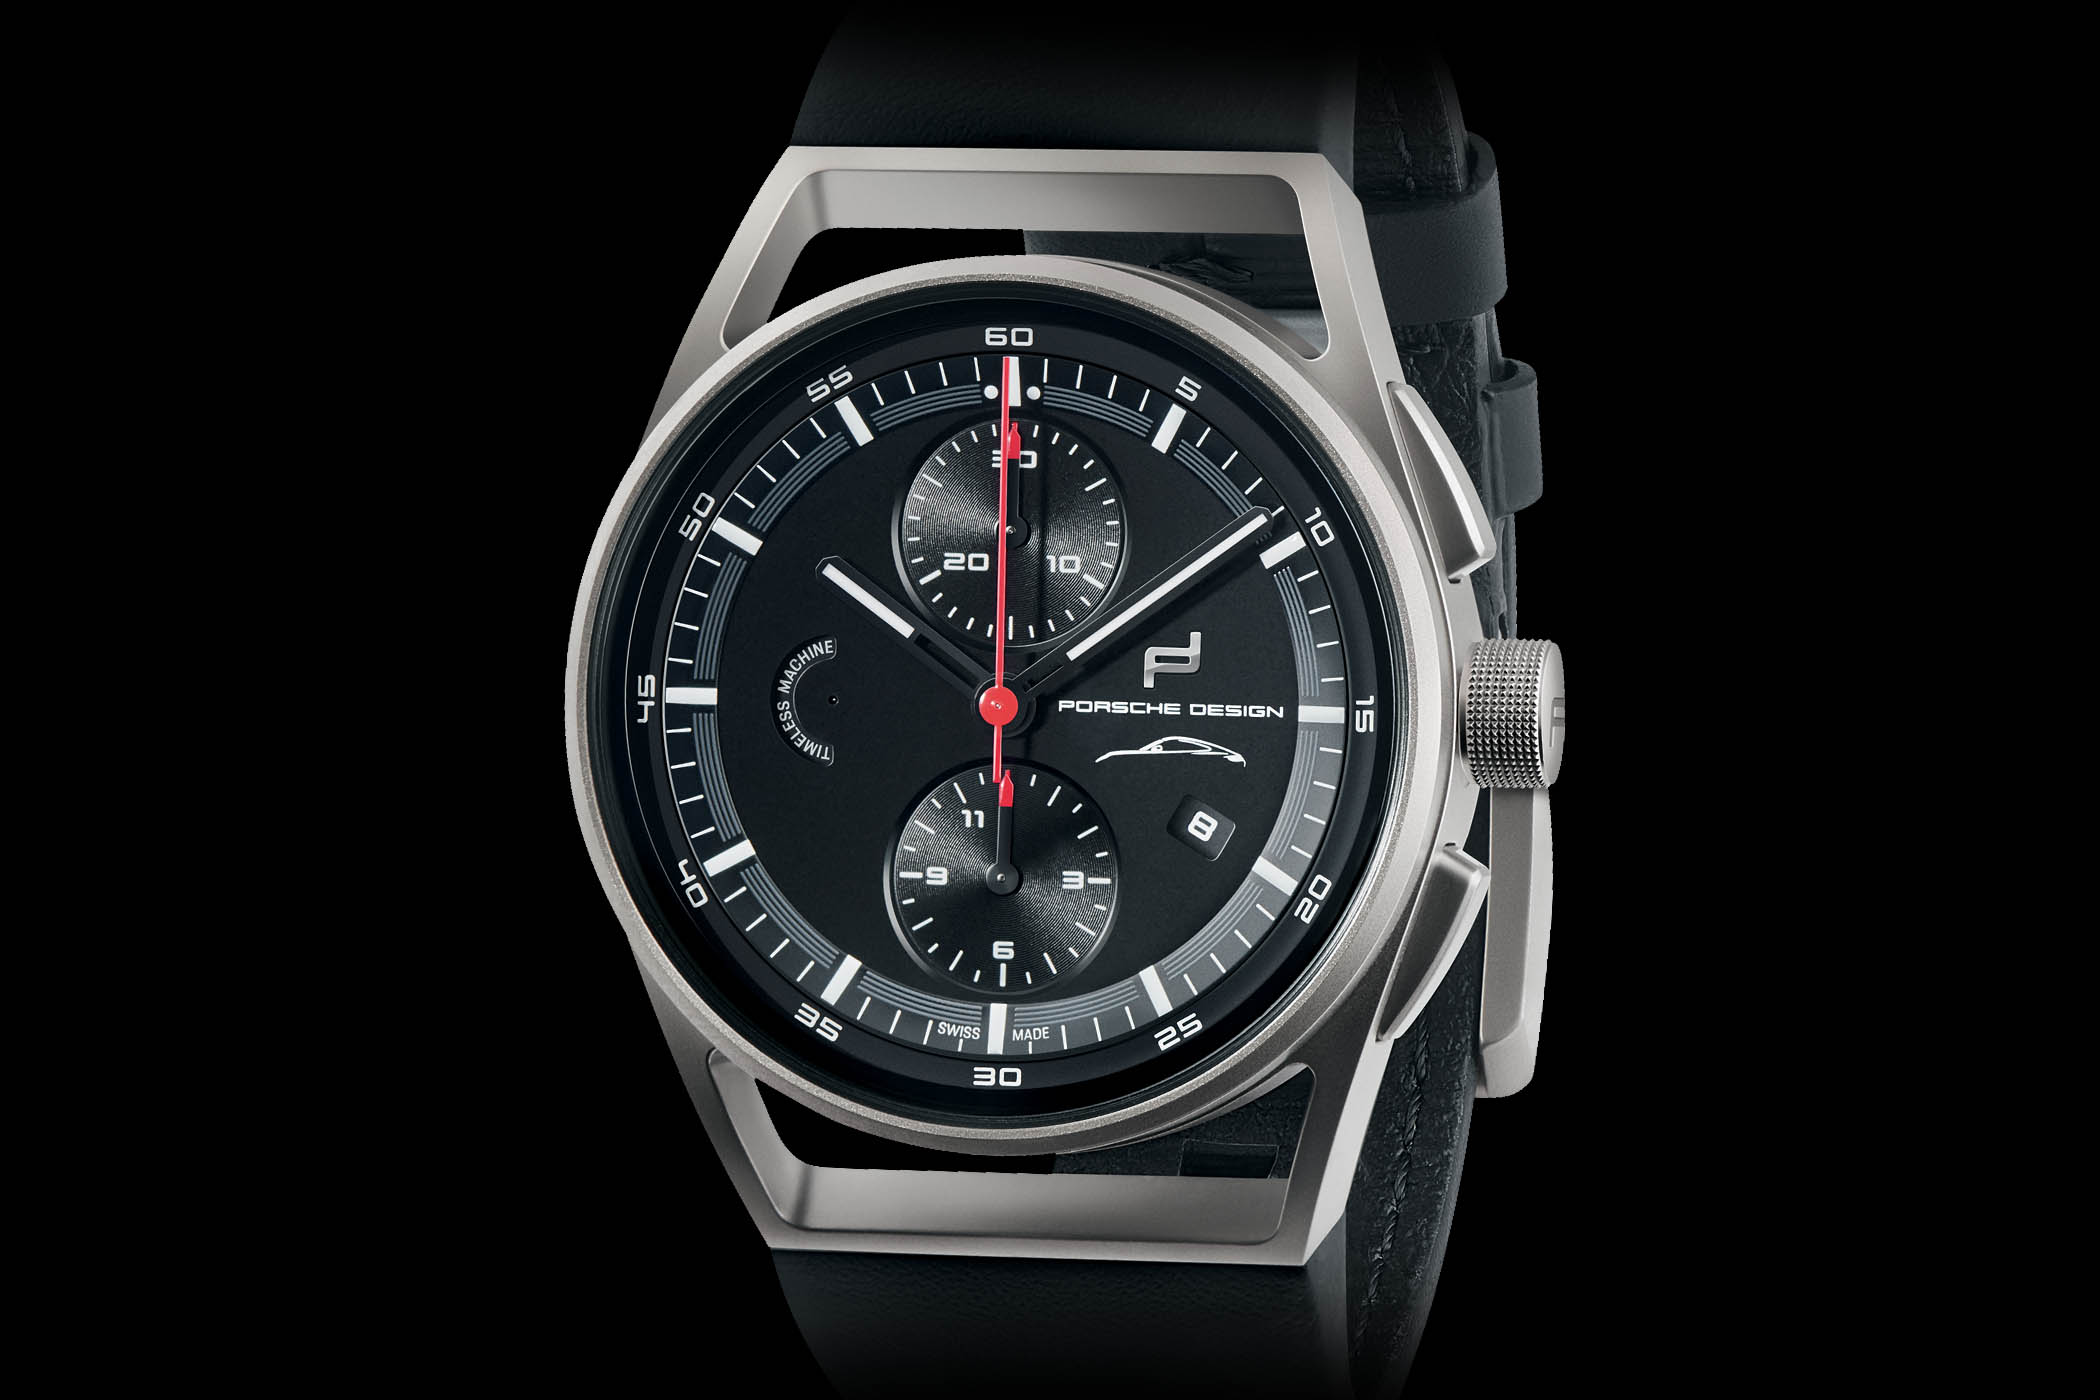 09f77adf8e69 Porsche Design brings the latest Porsche 911 to your wrist with this new  911 Chronograph Timeless Machine Limited Edition.